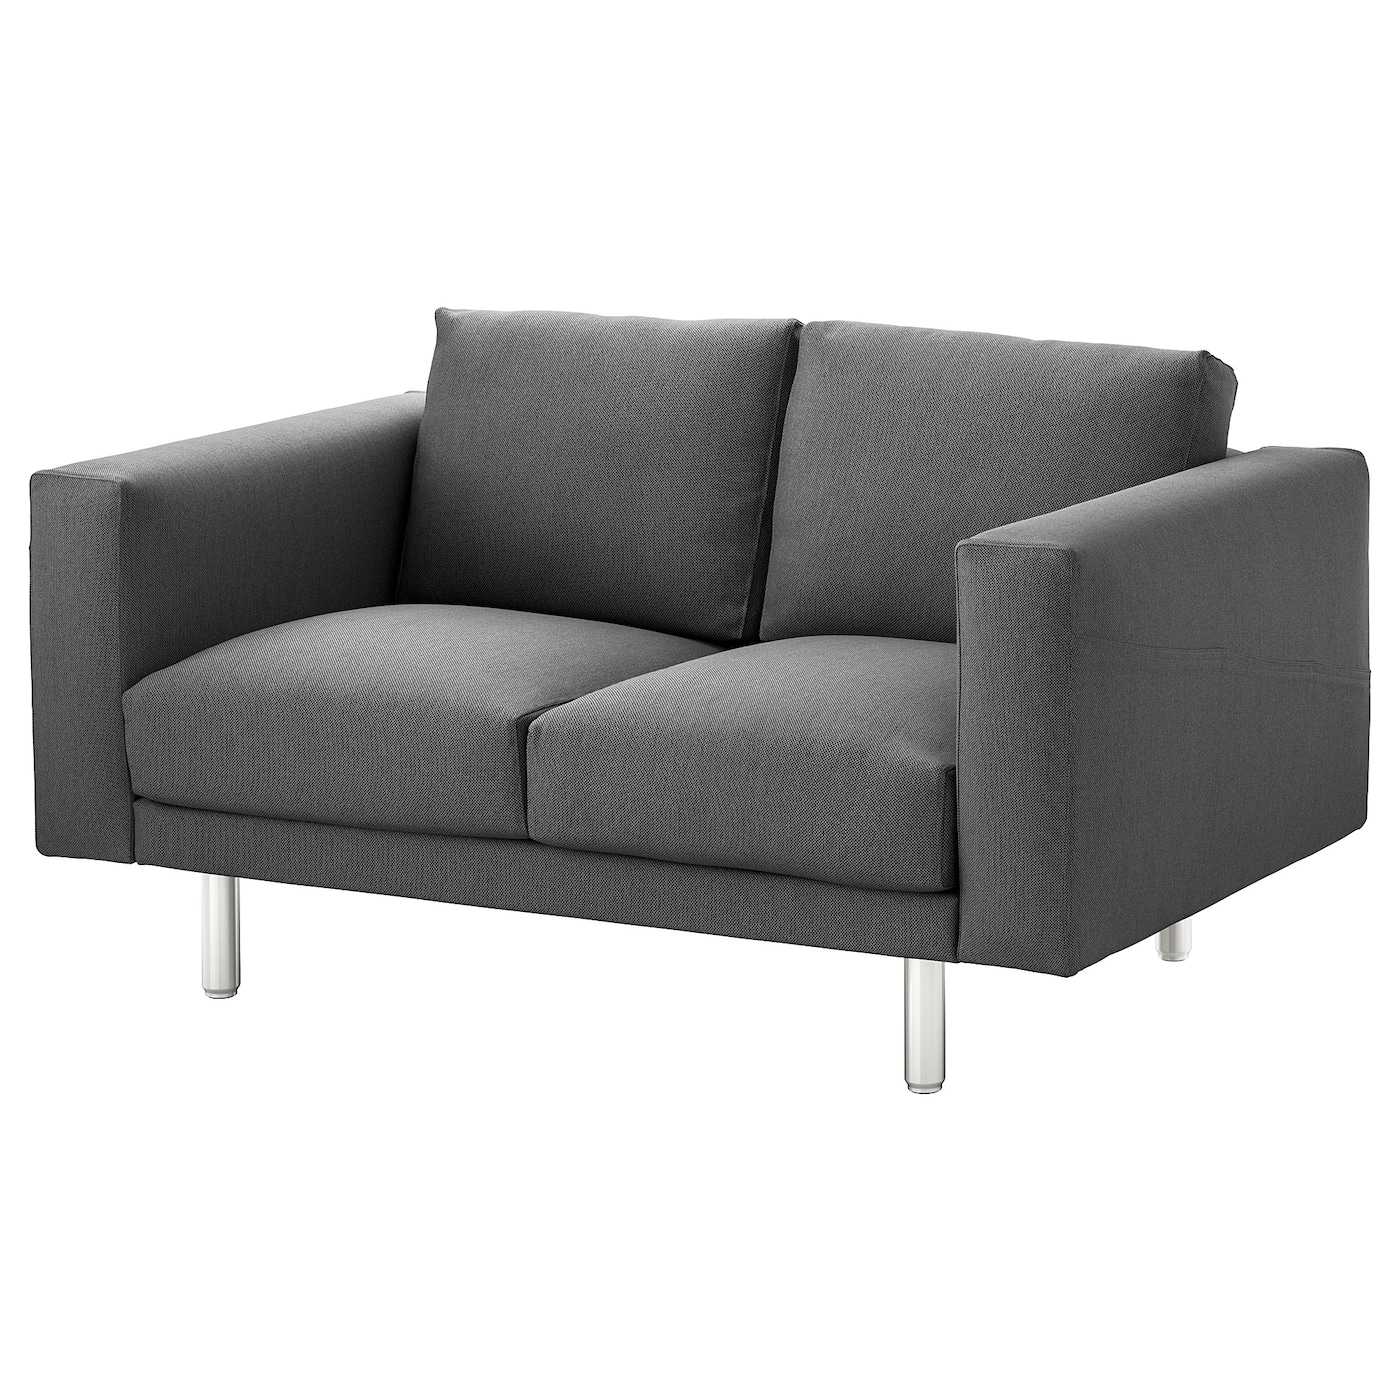 norsborg 2 seat sofa finnsta dark grey metal ikea. Black Bedroom Furniture Sets. Home Design Ideas